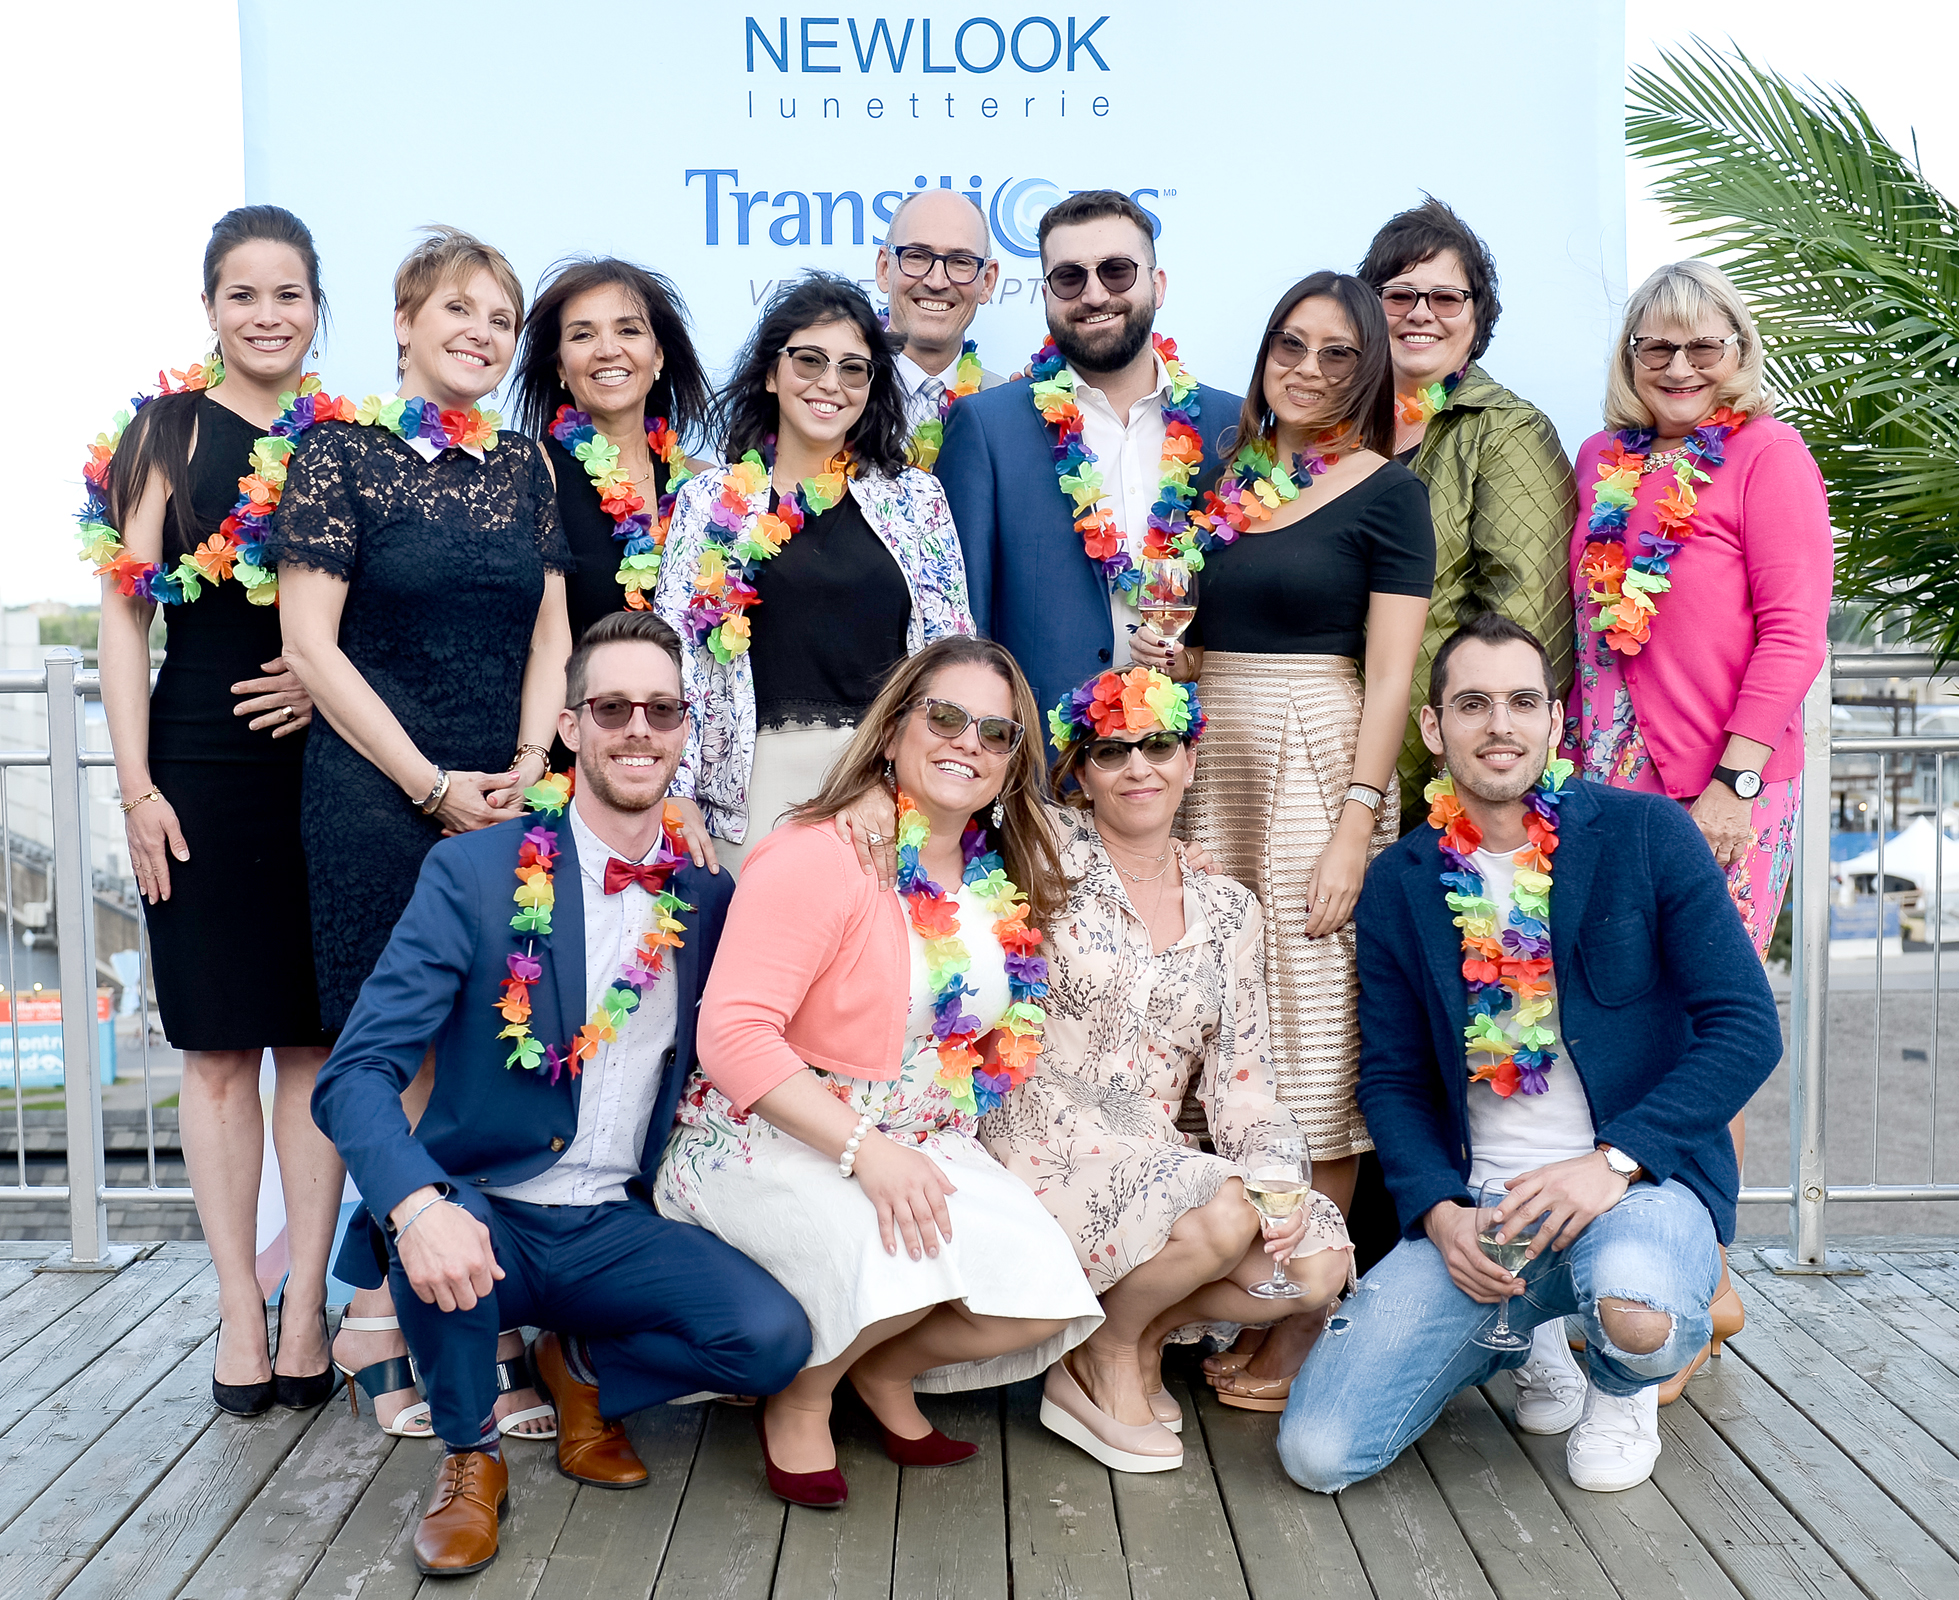 Transitions Optical and New Look Eyewear host educational event on sun protection for Canadian Media